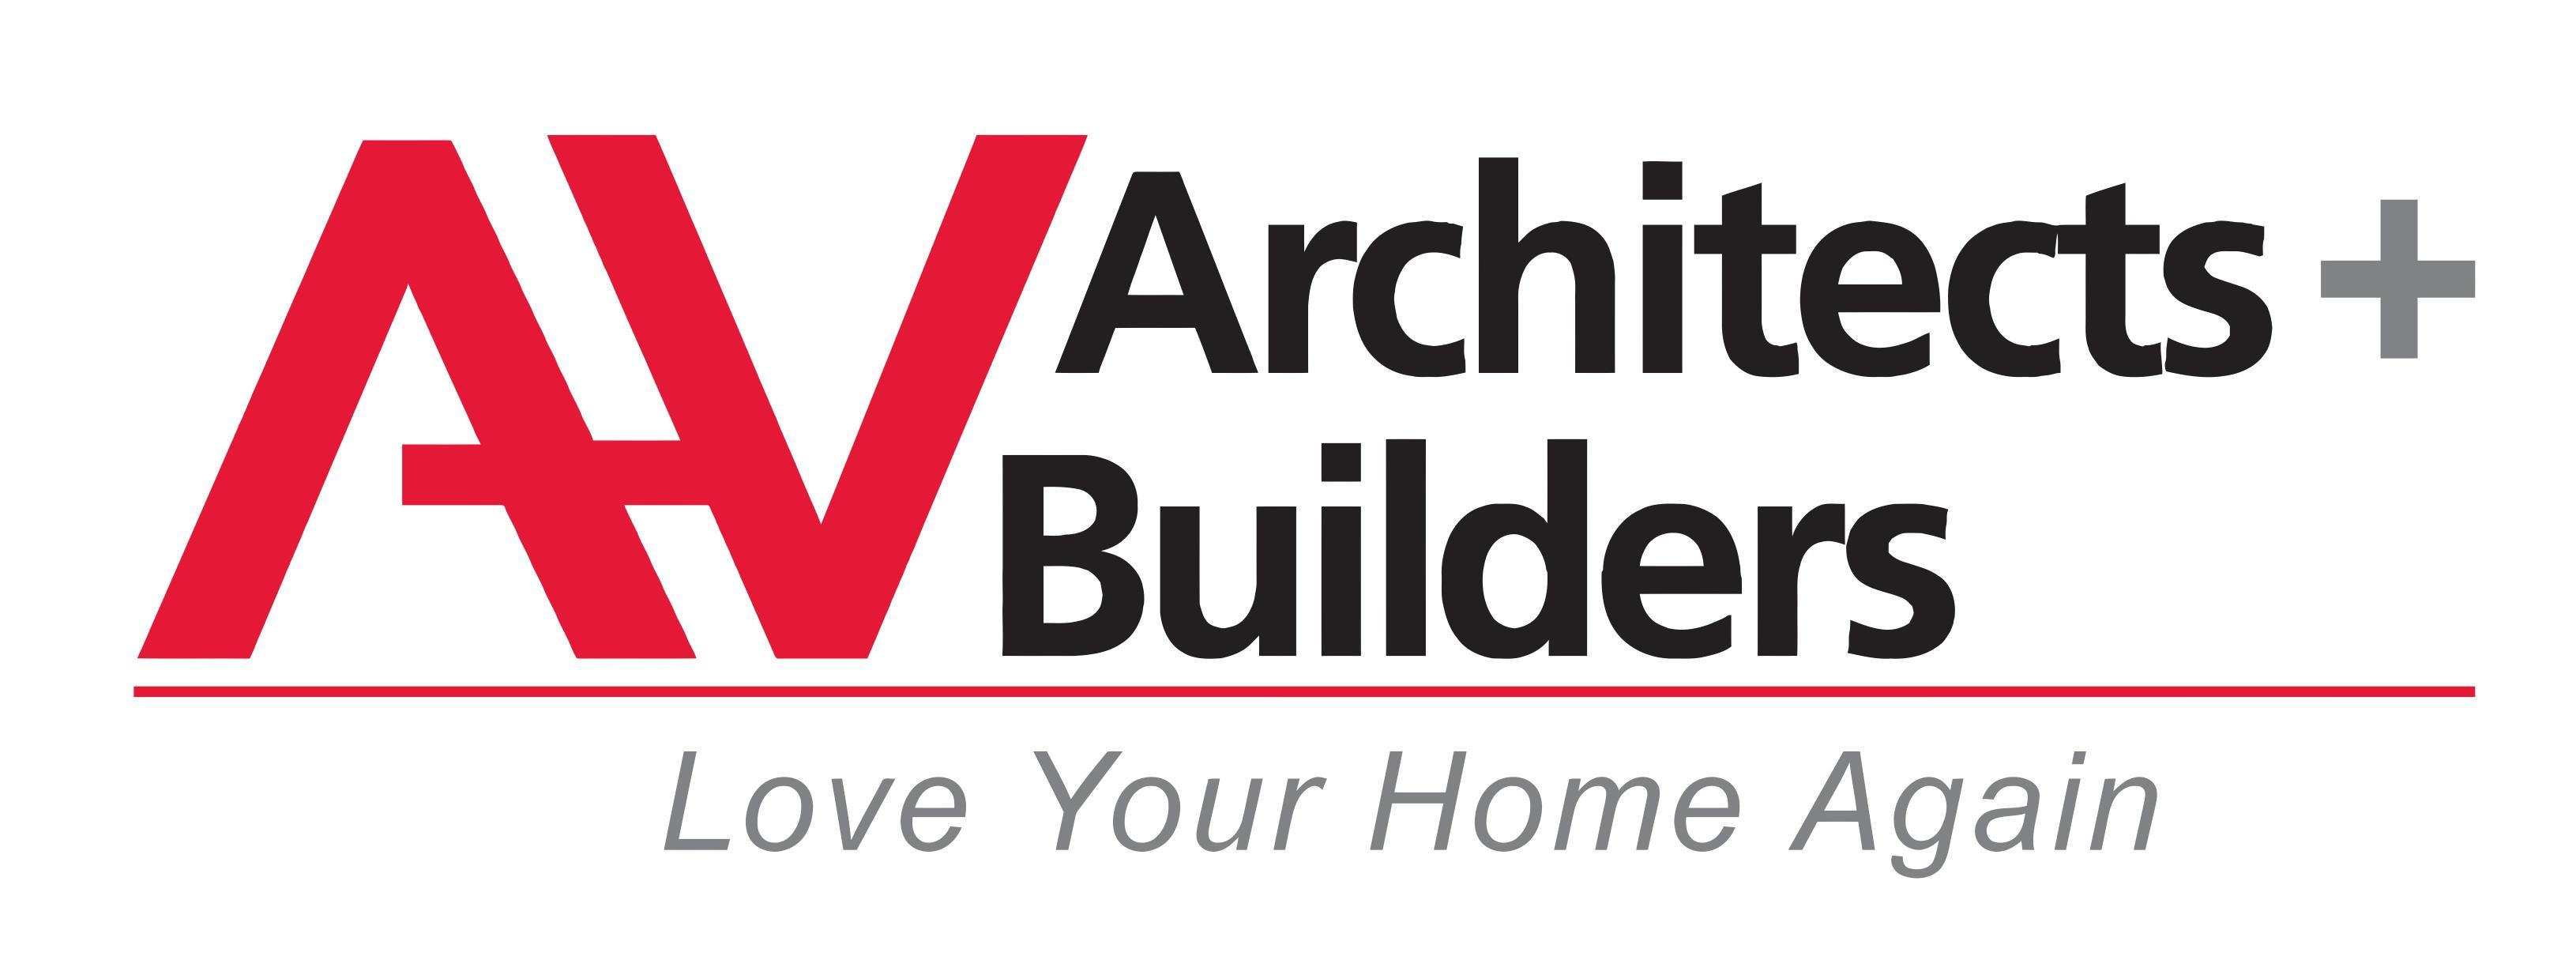 AV Architects and Builders